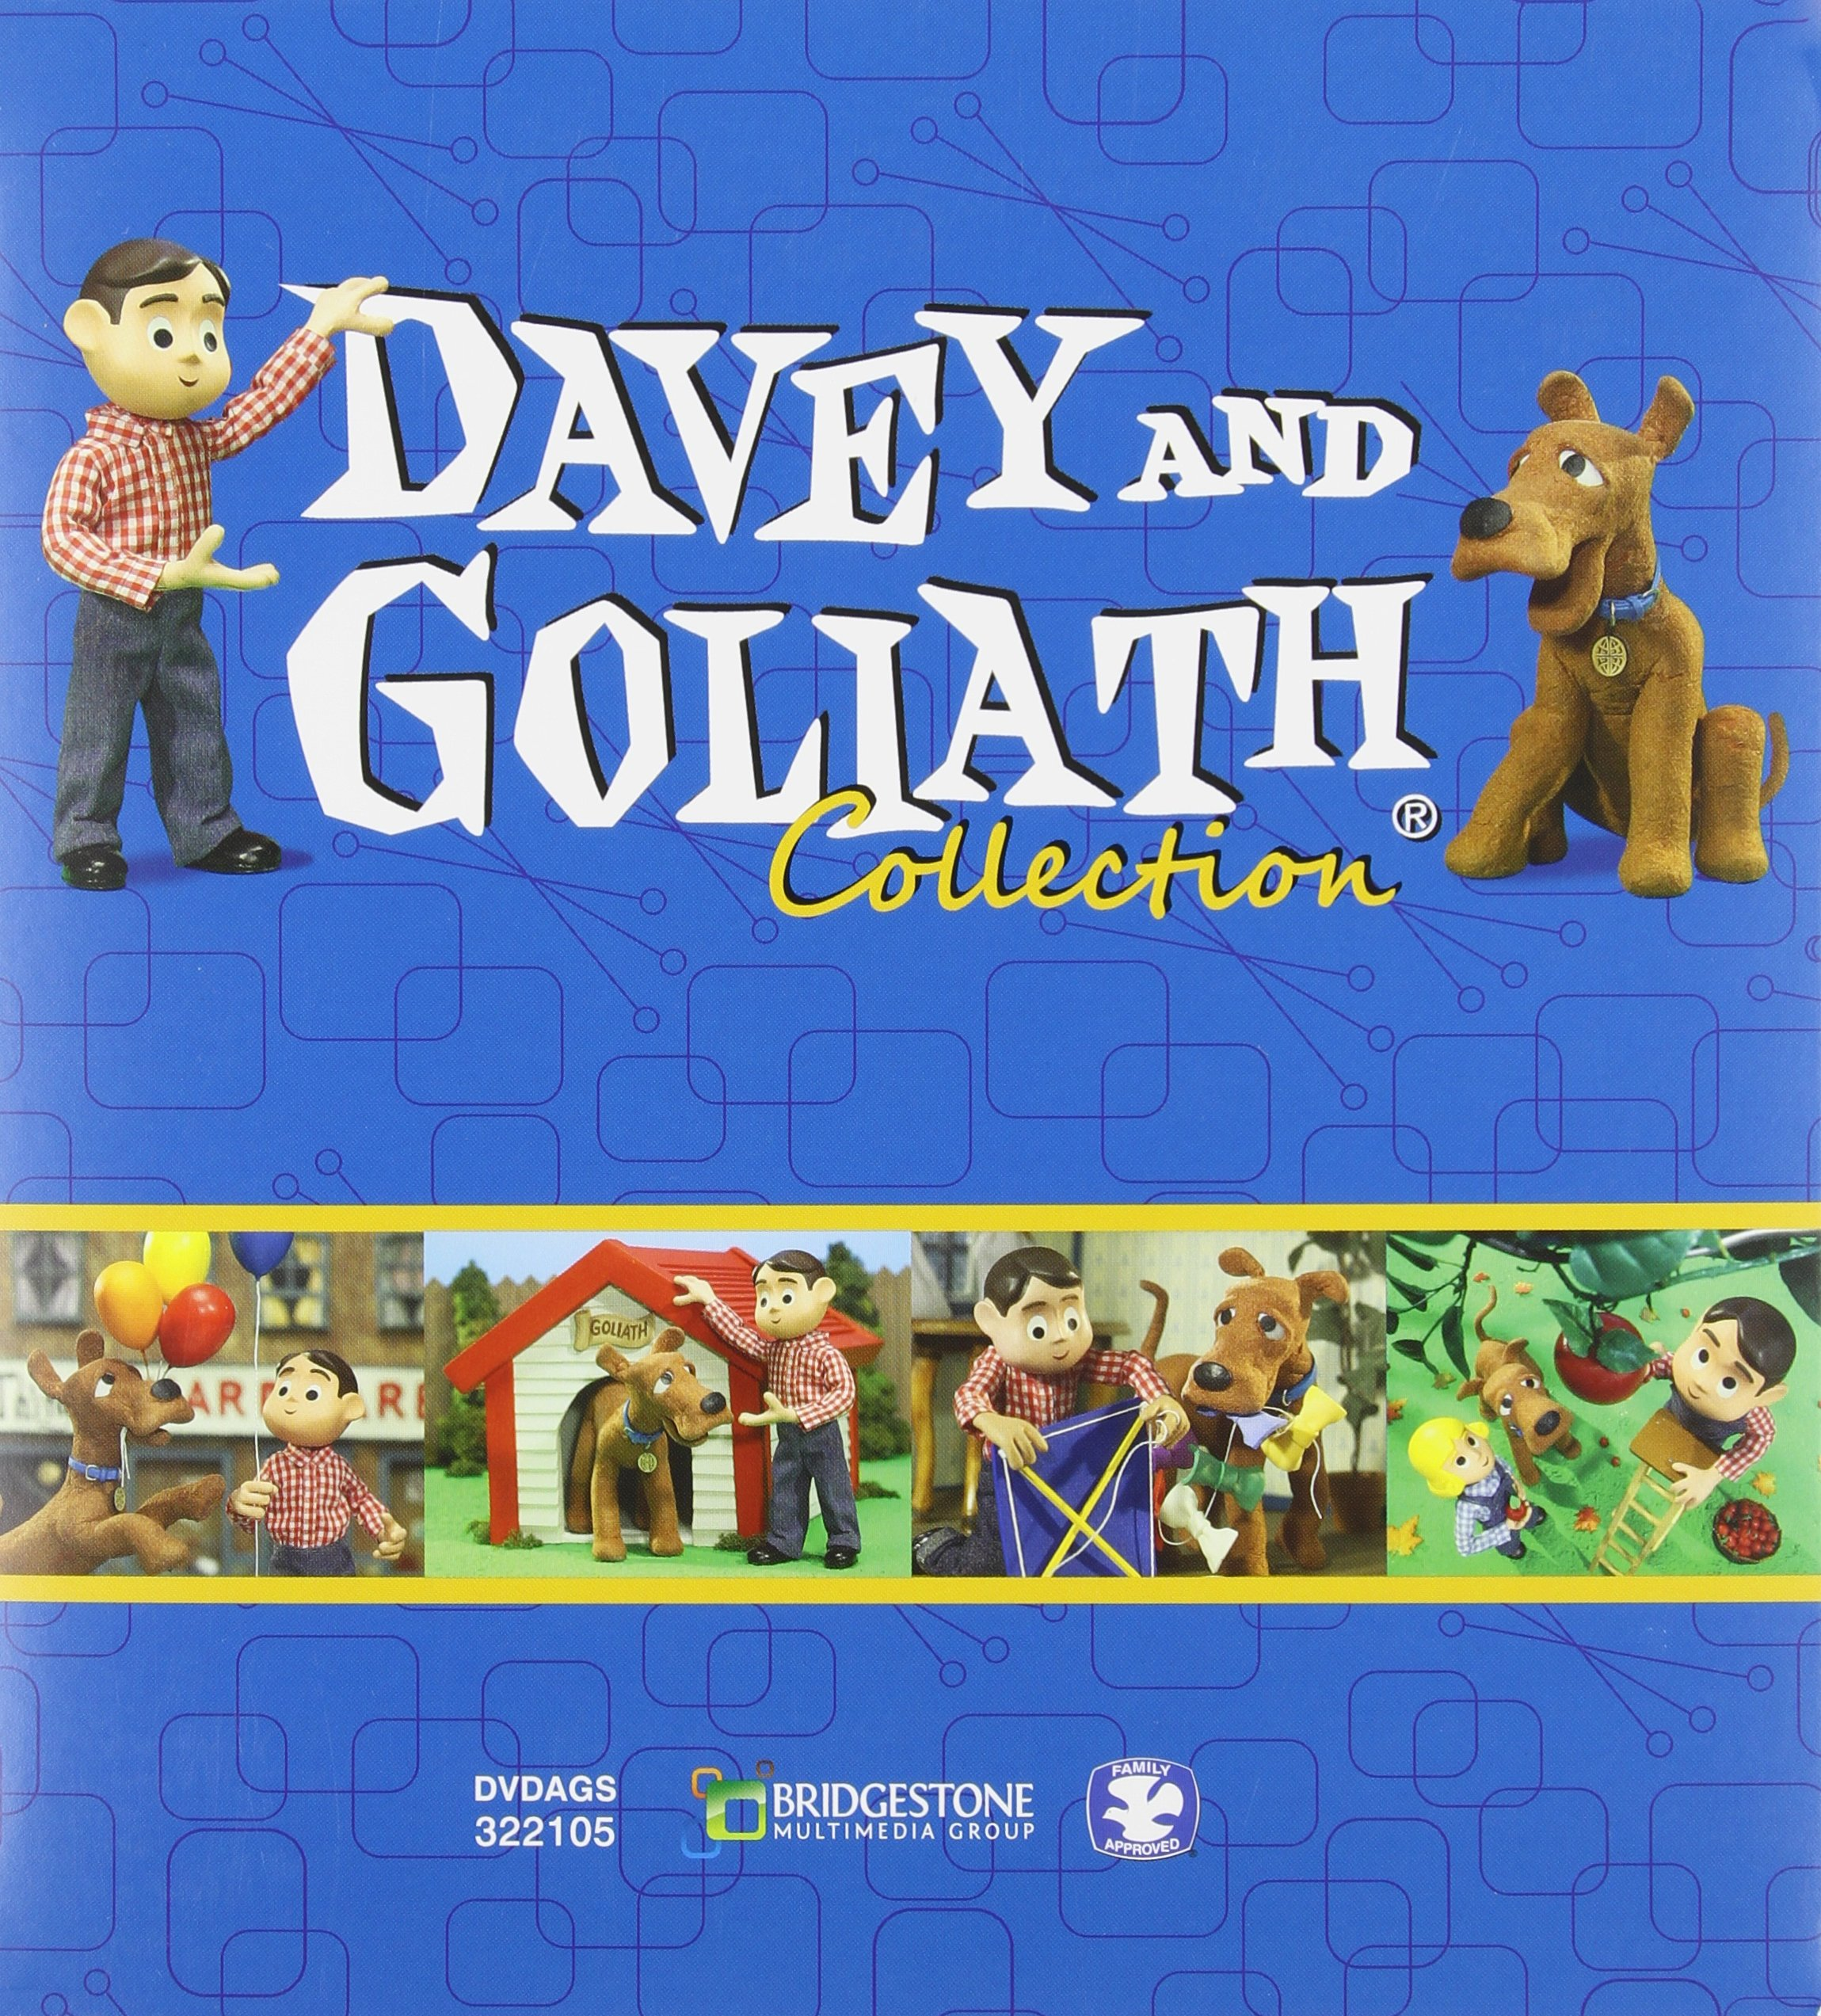 Davey and Goliath Collection by Bridgestone Multimedia